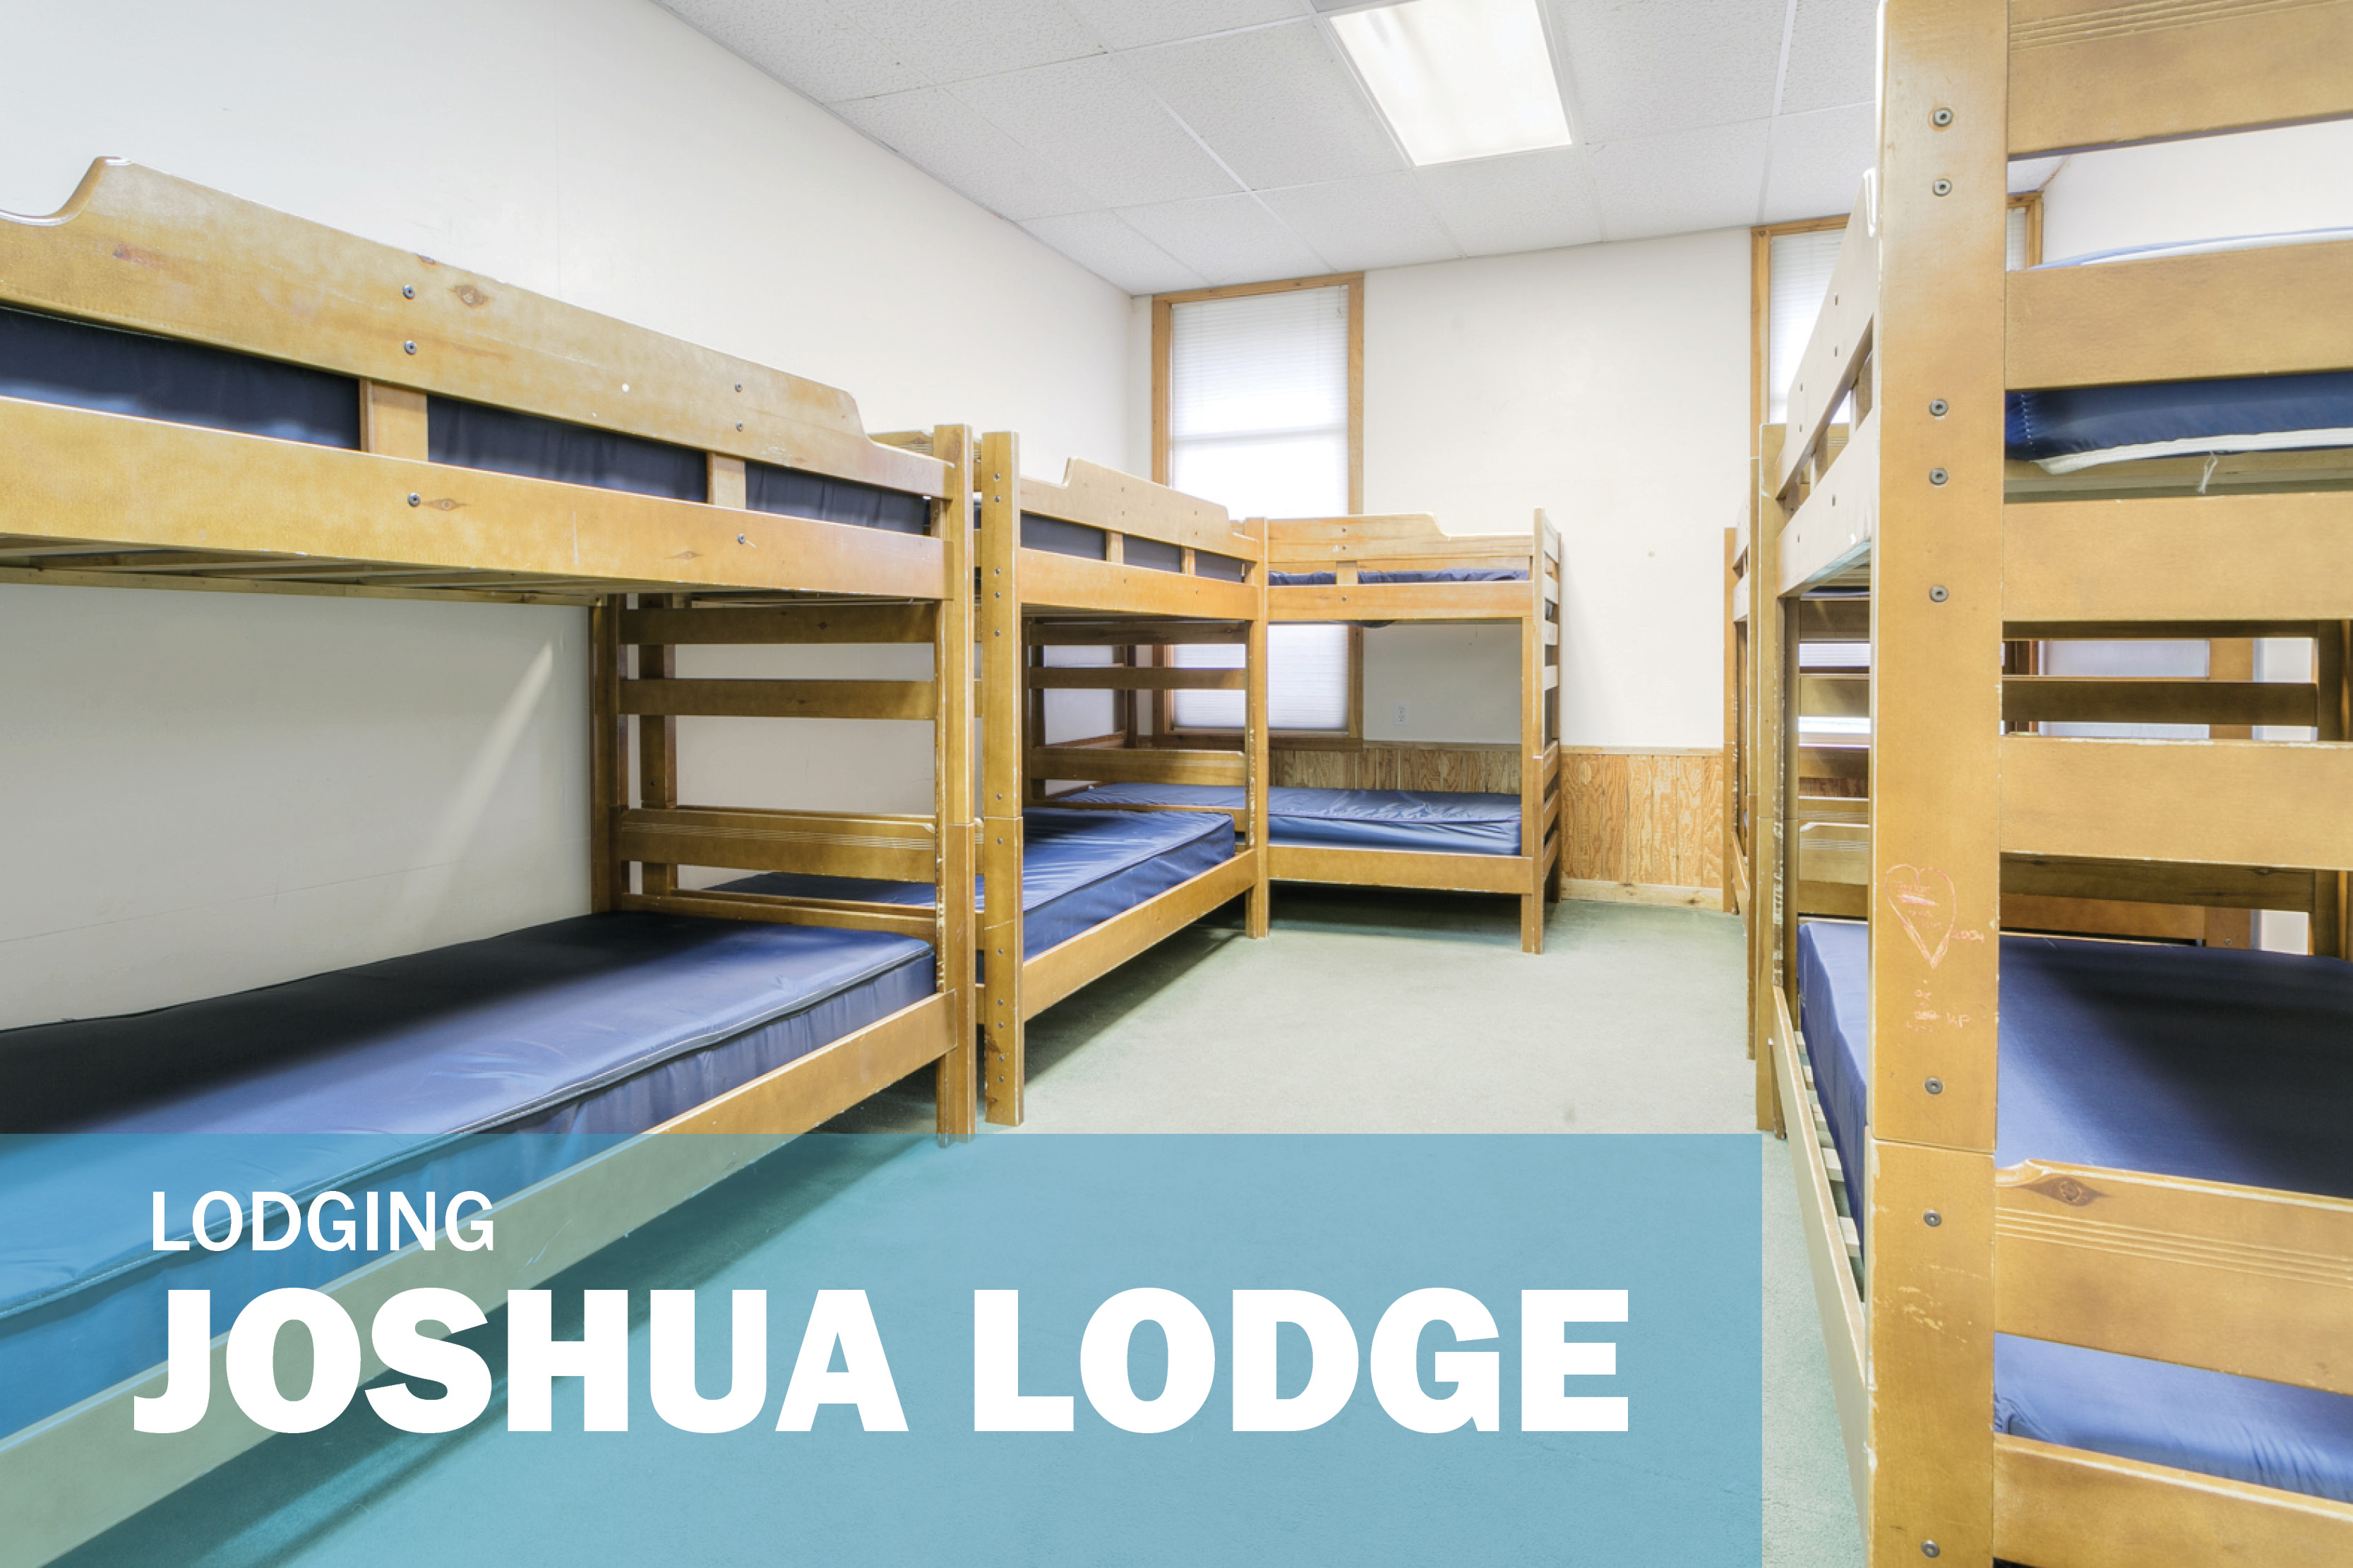 JOSHUA LODGE